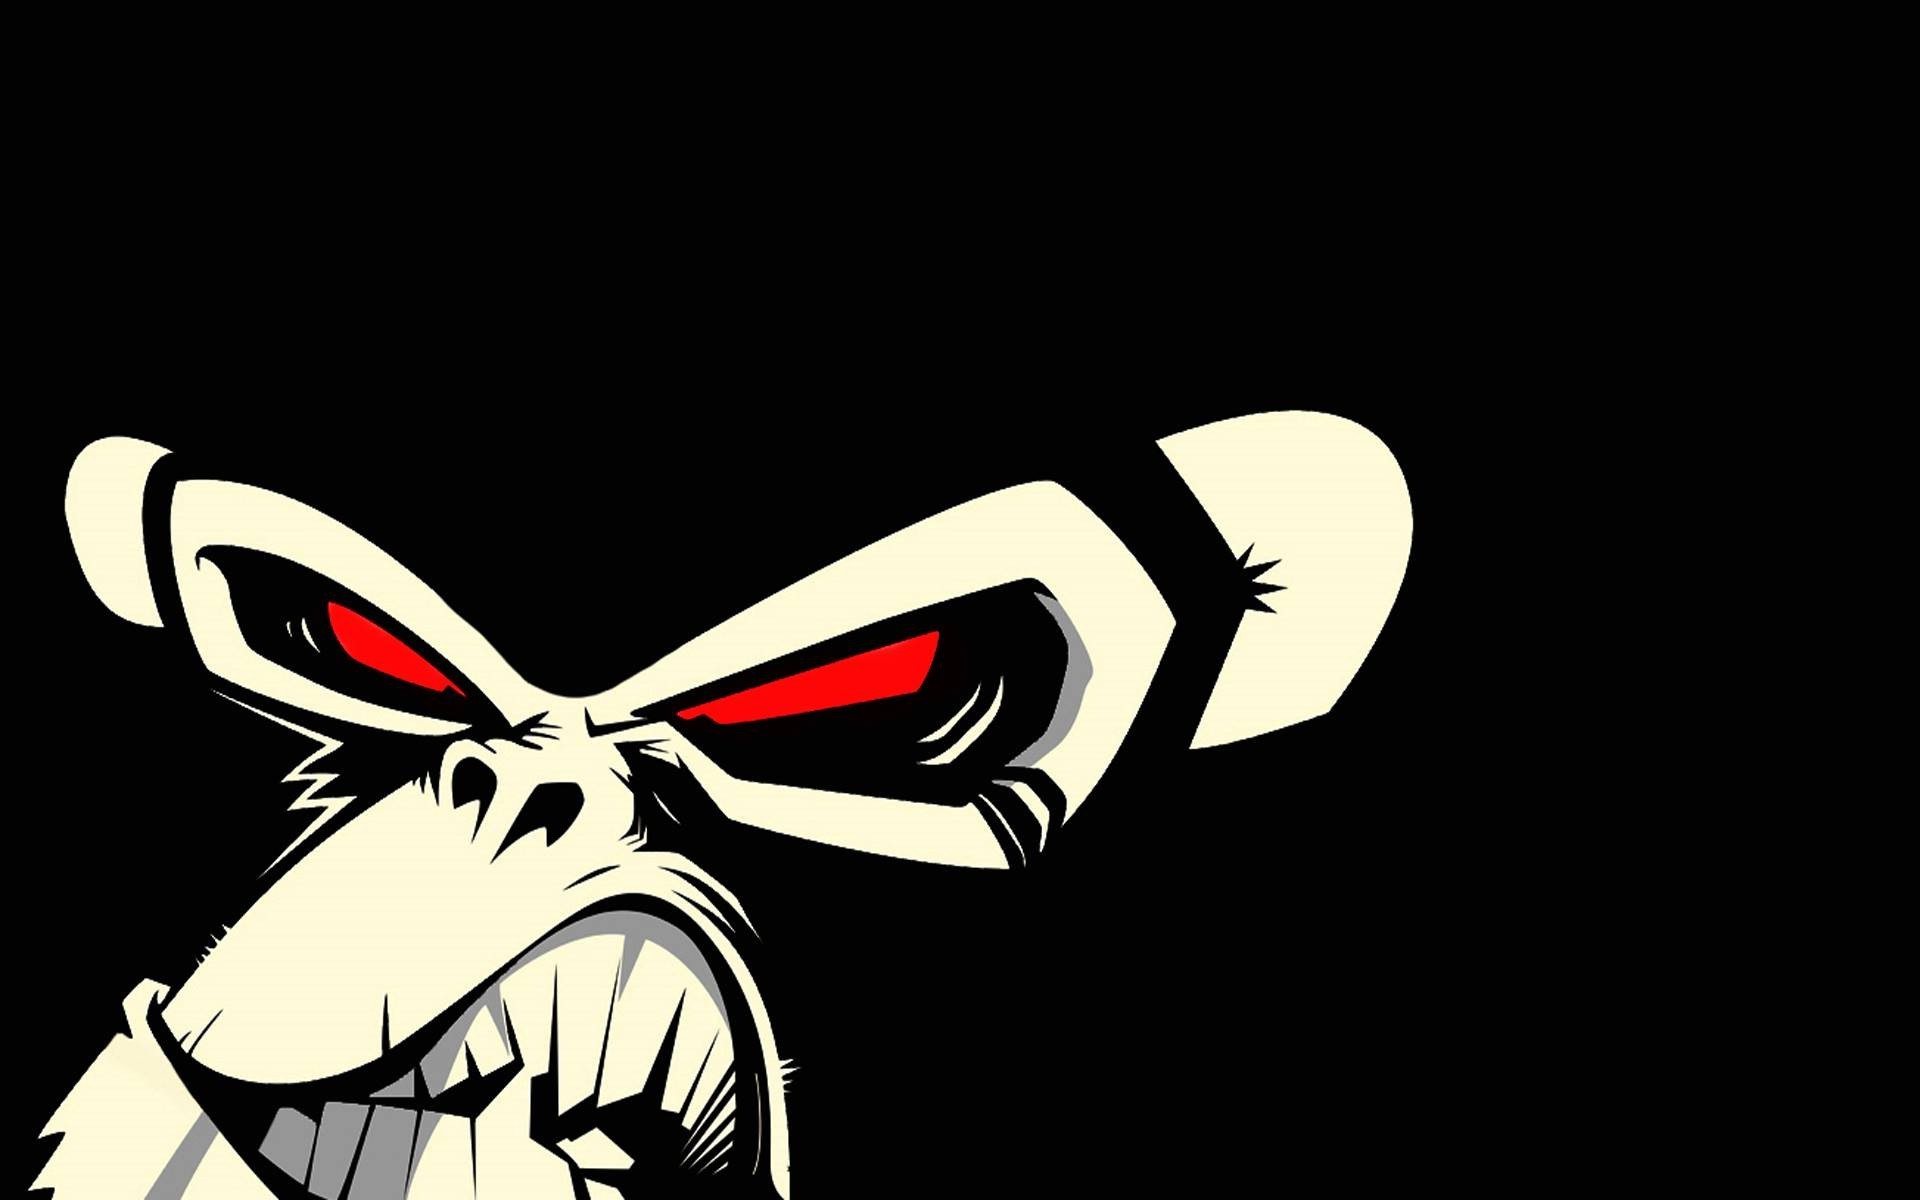 Red Eyes clipart anger #12